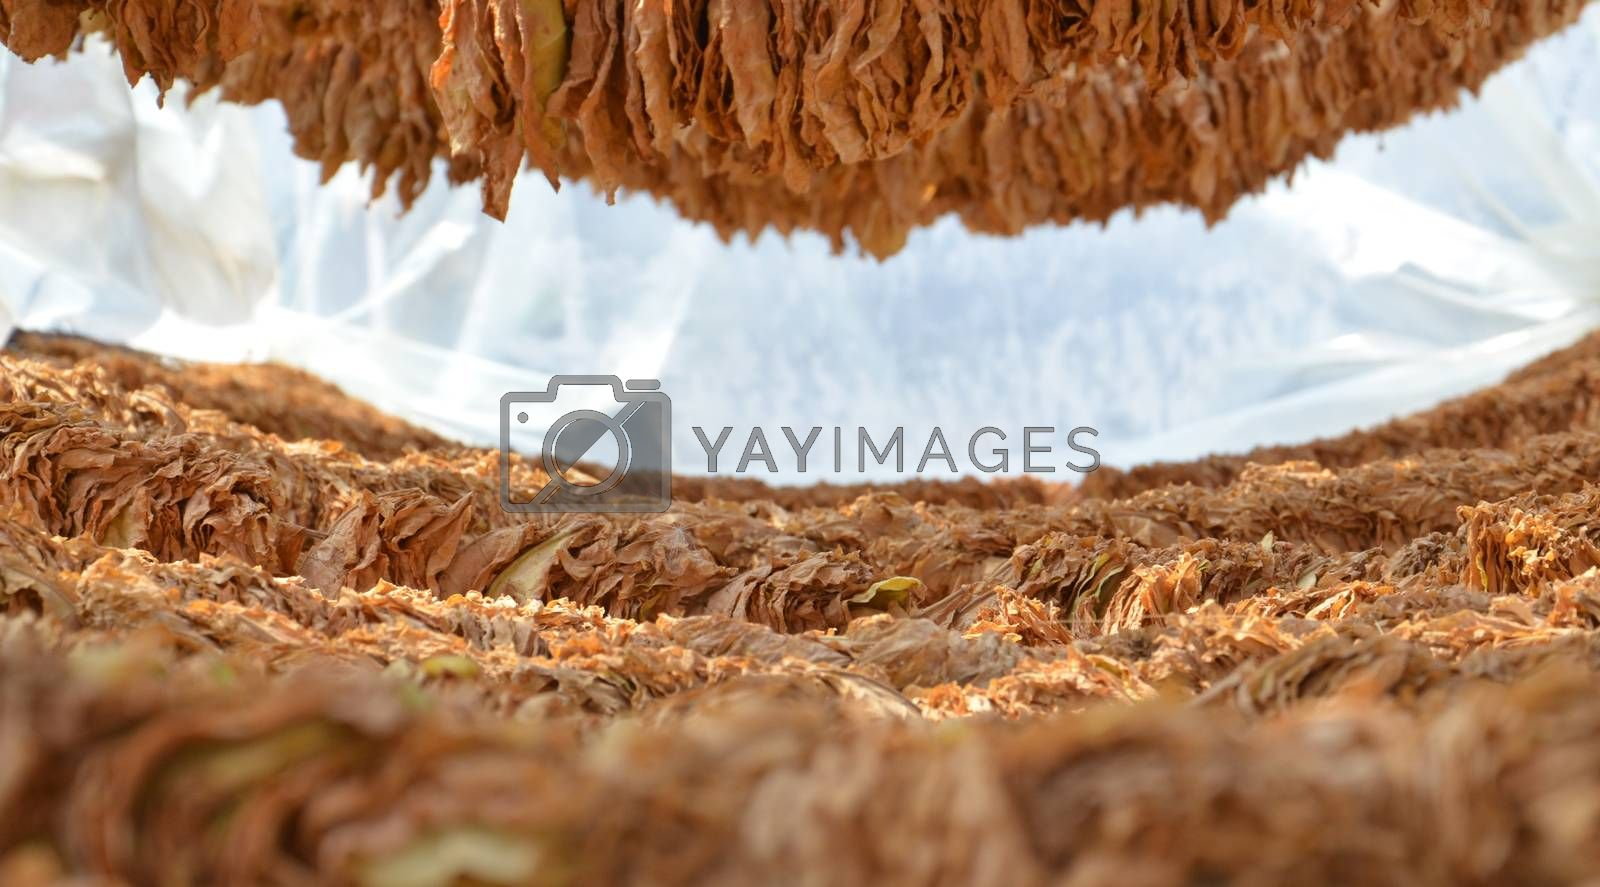 Royalty free image of Tobacco dry in the sun by nehru